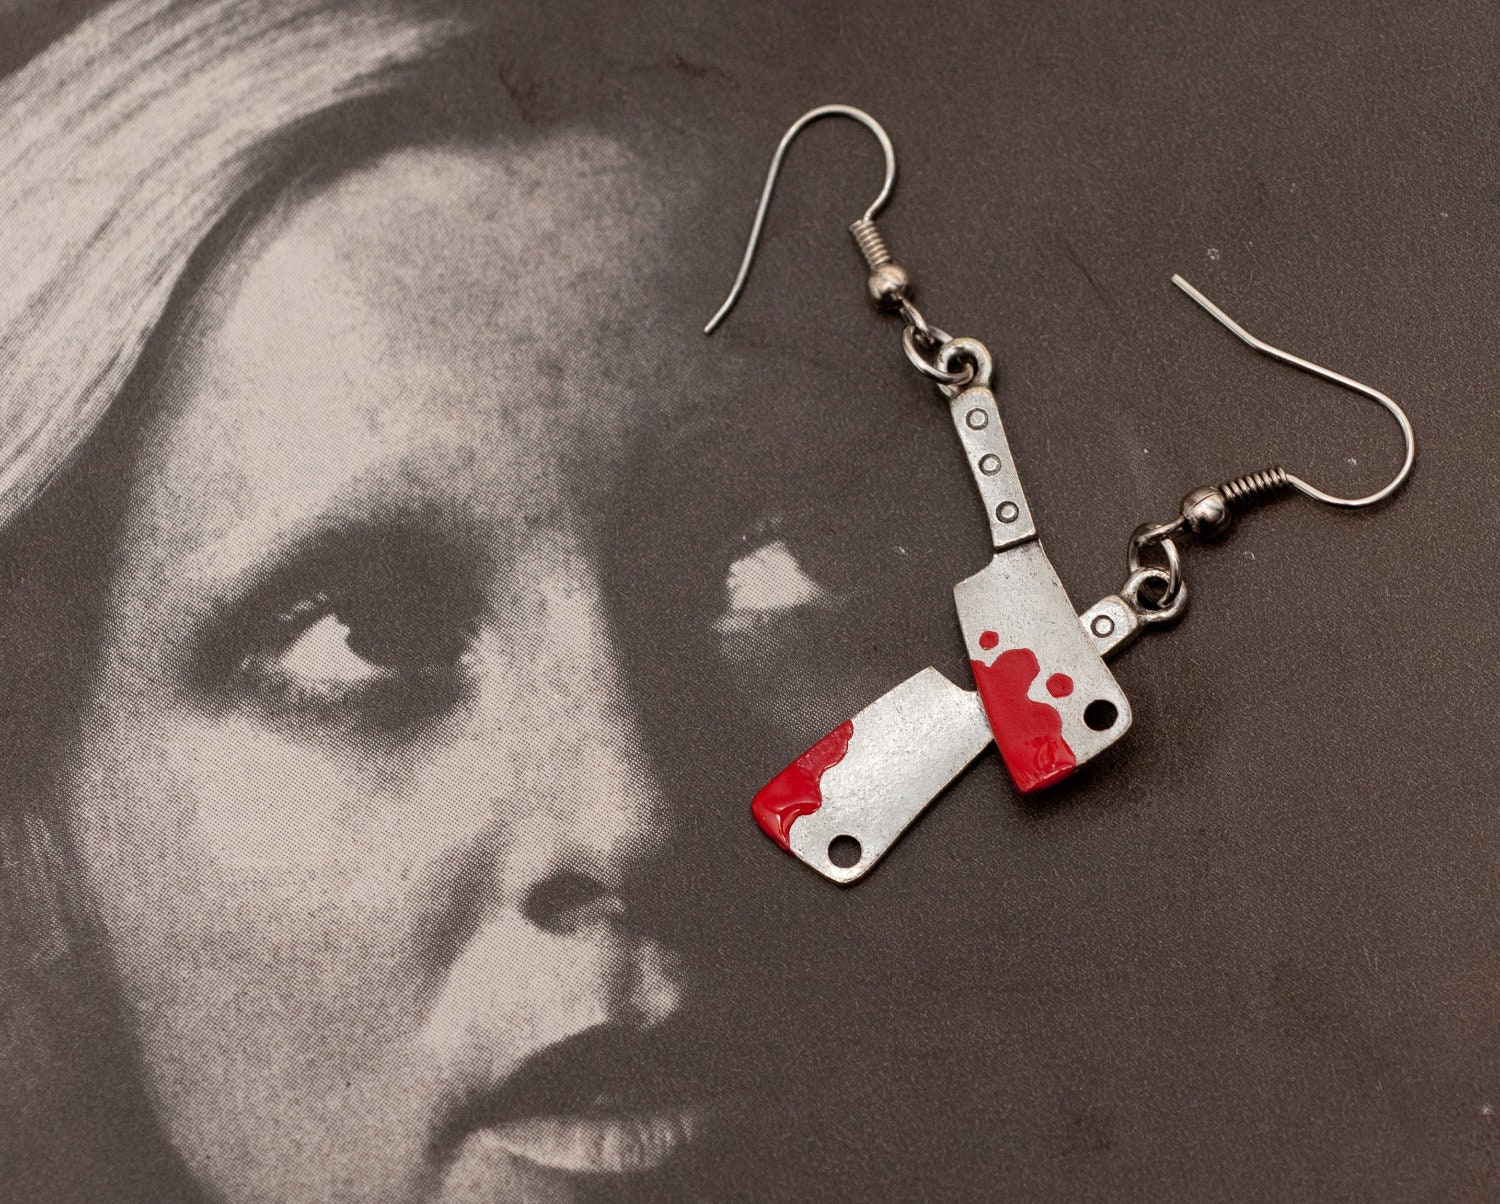 Earrings - Meat Cleavers with Icky Dripping Blood for Lovers of Tiny Evil Things - $17.00 USD